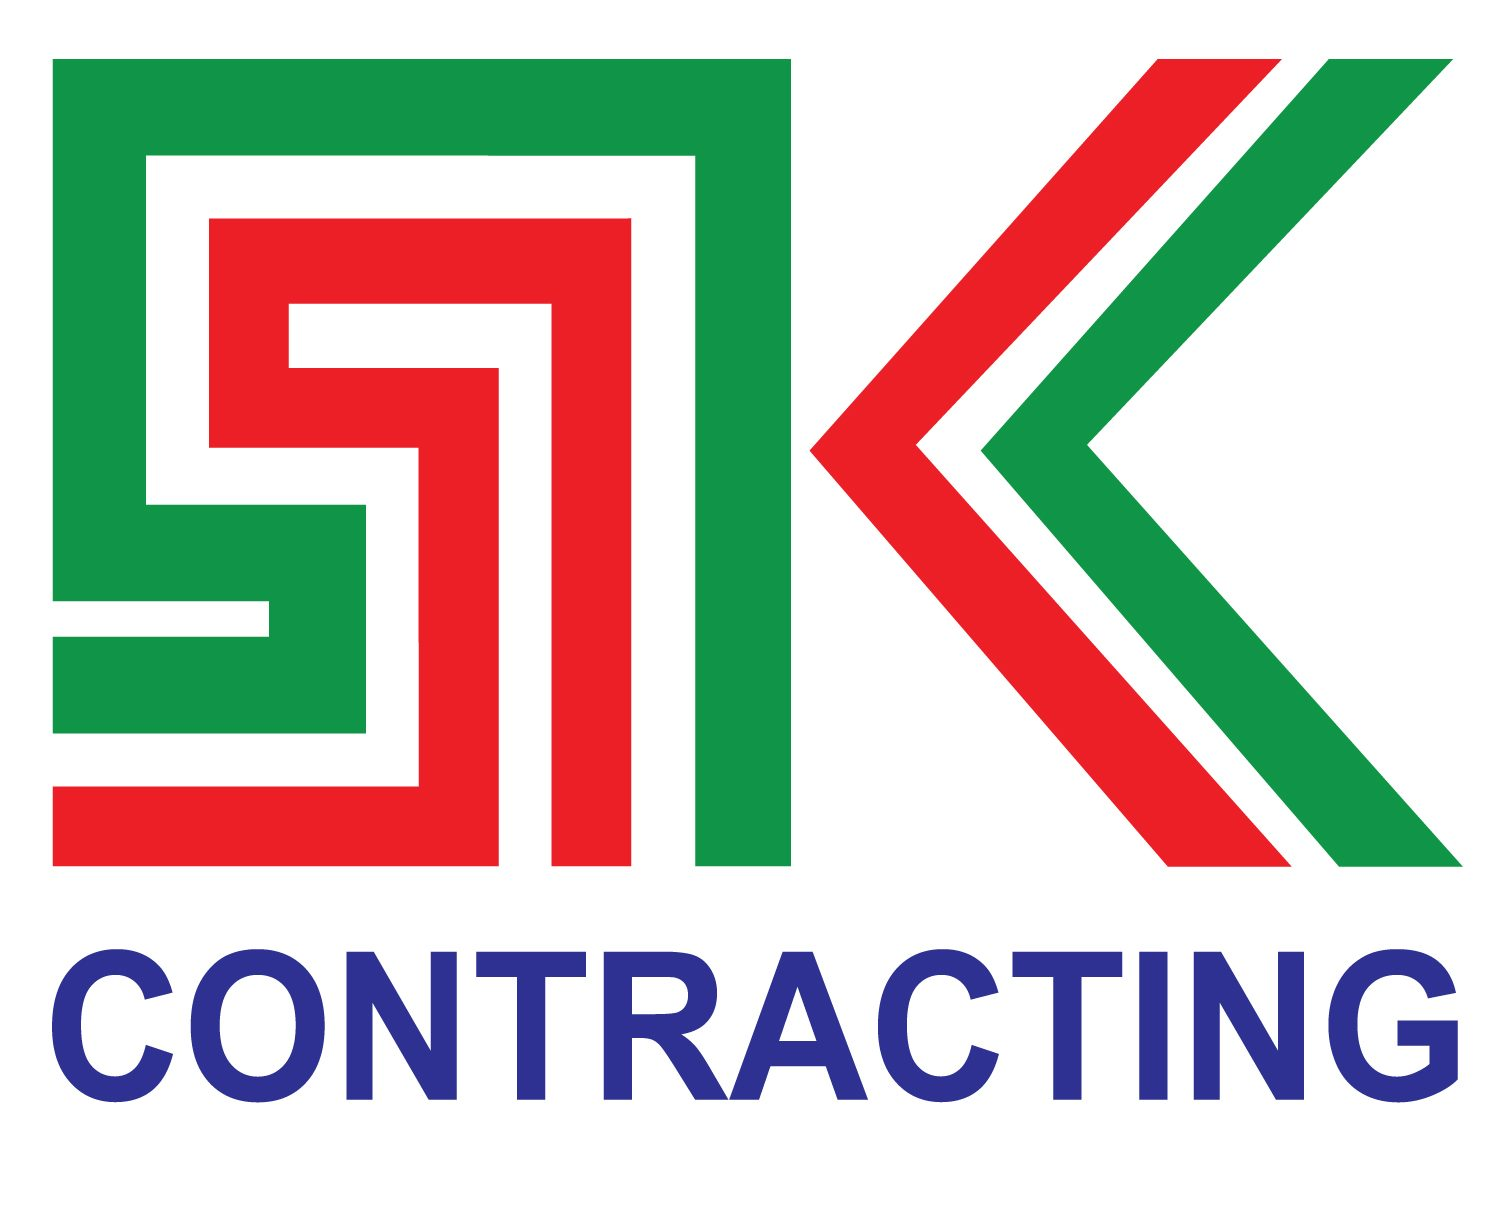 SK-Contracting – The best possible contracting services at a